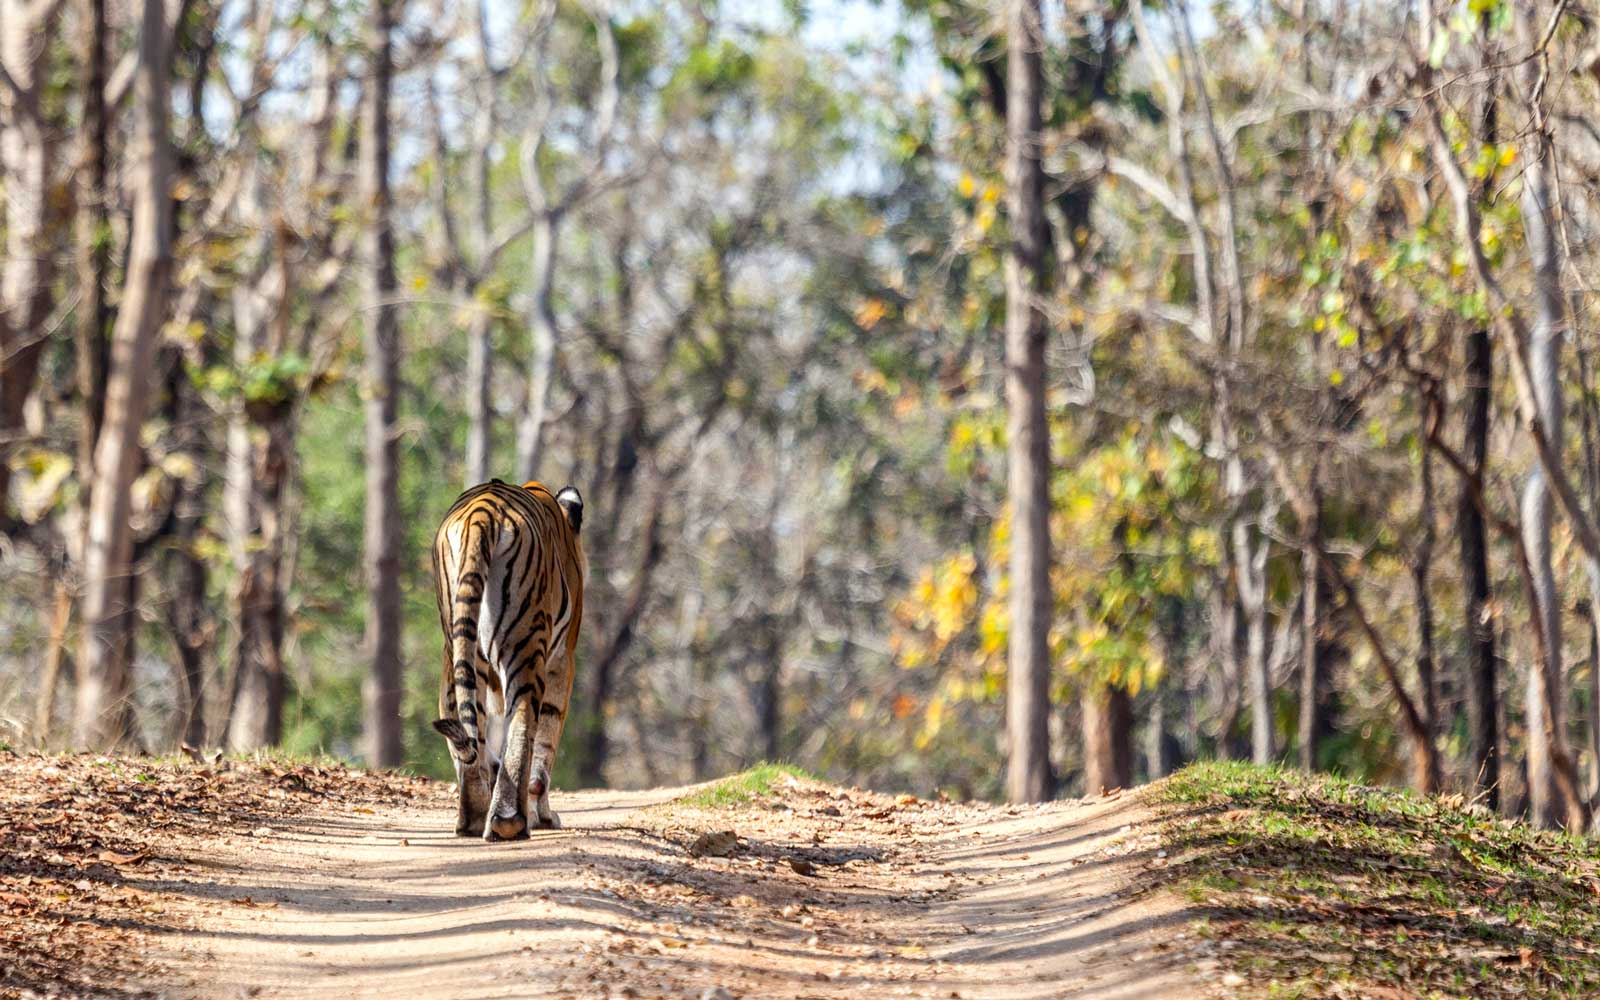 Going On a Tiger Safari in India Is More Than Just a Chance to See the Majestic Animals — It's a Chance to Help Save Them